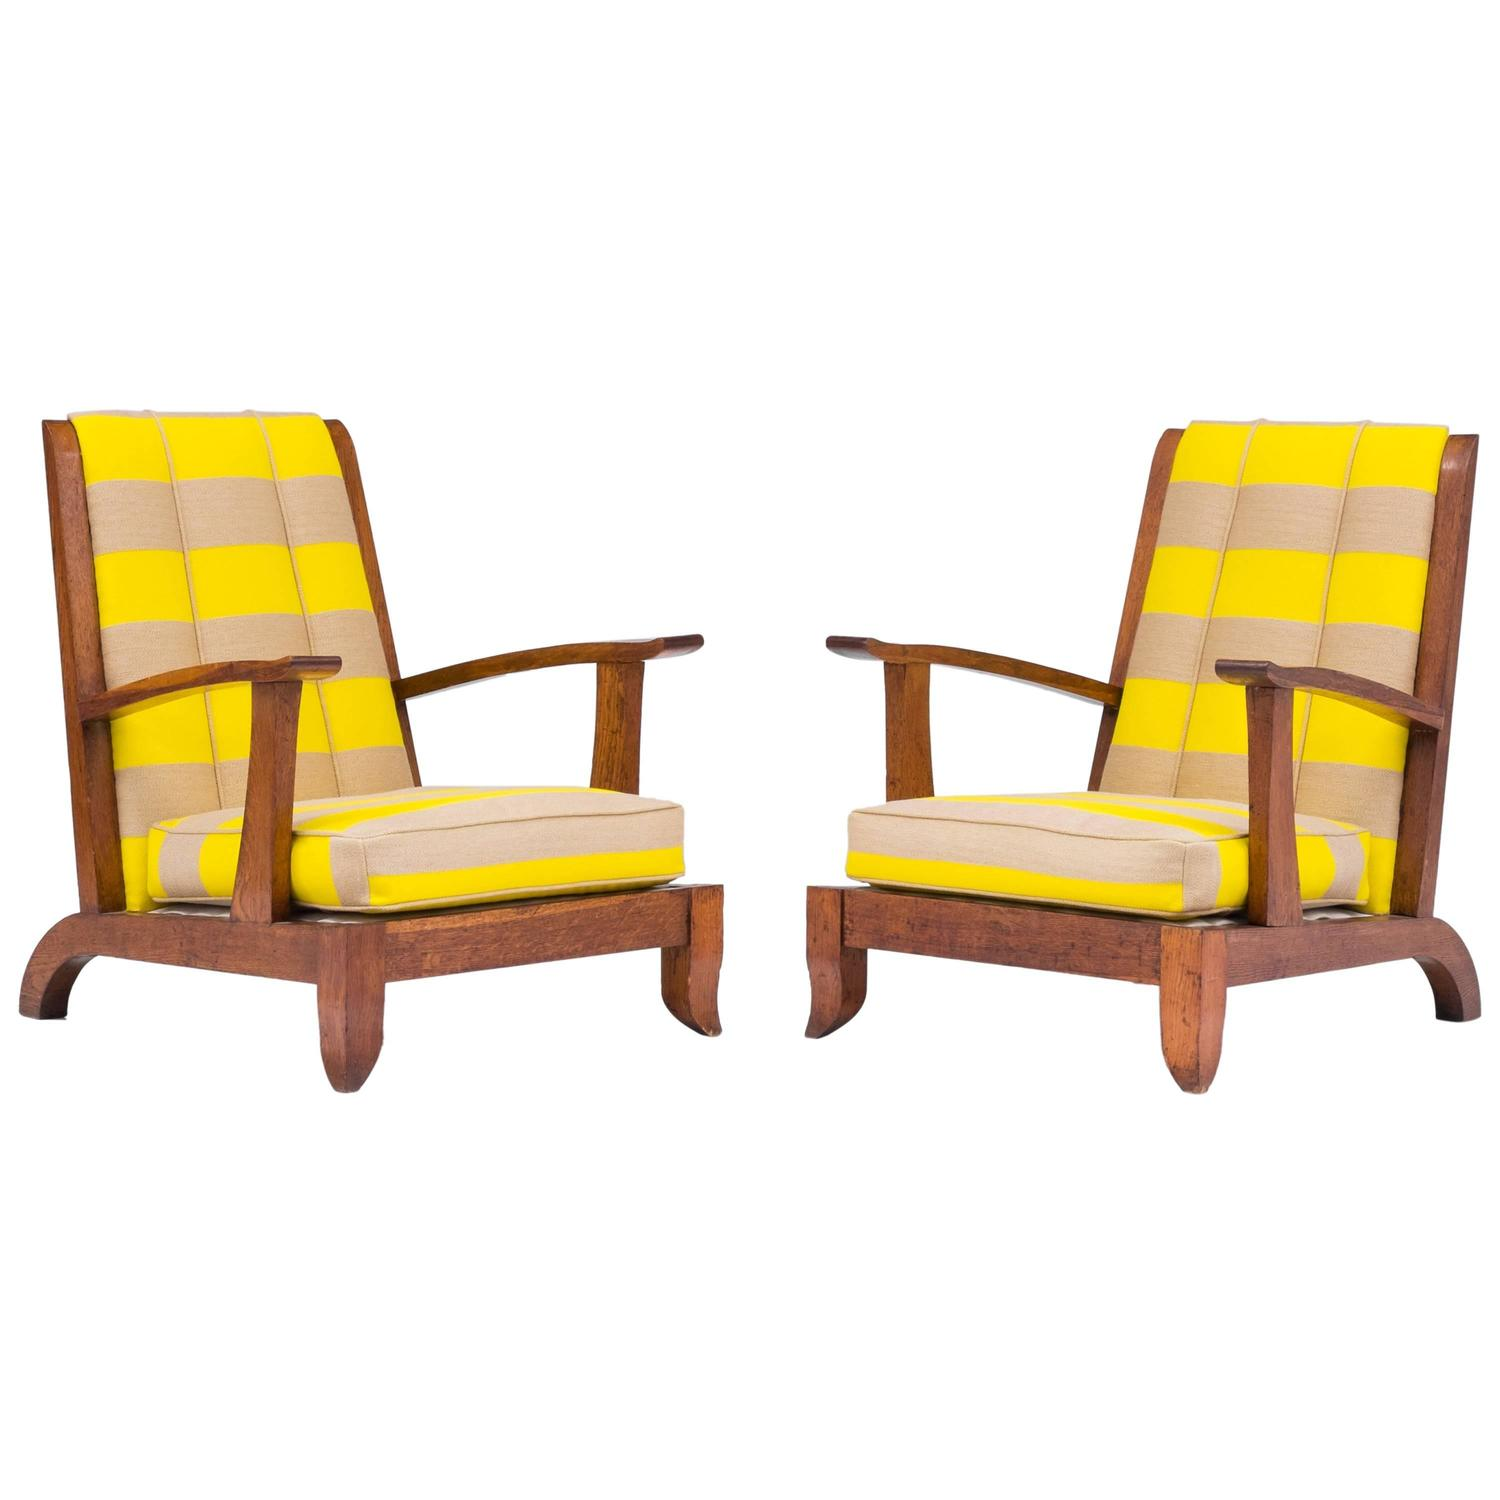 Pair Of Important French Art Deco Fauteuils In Oak Raf